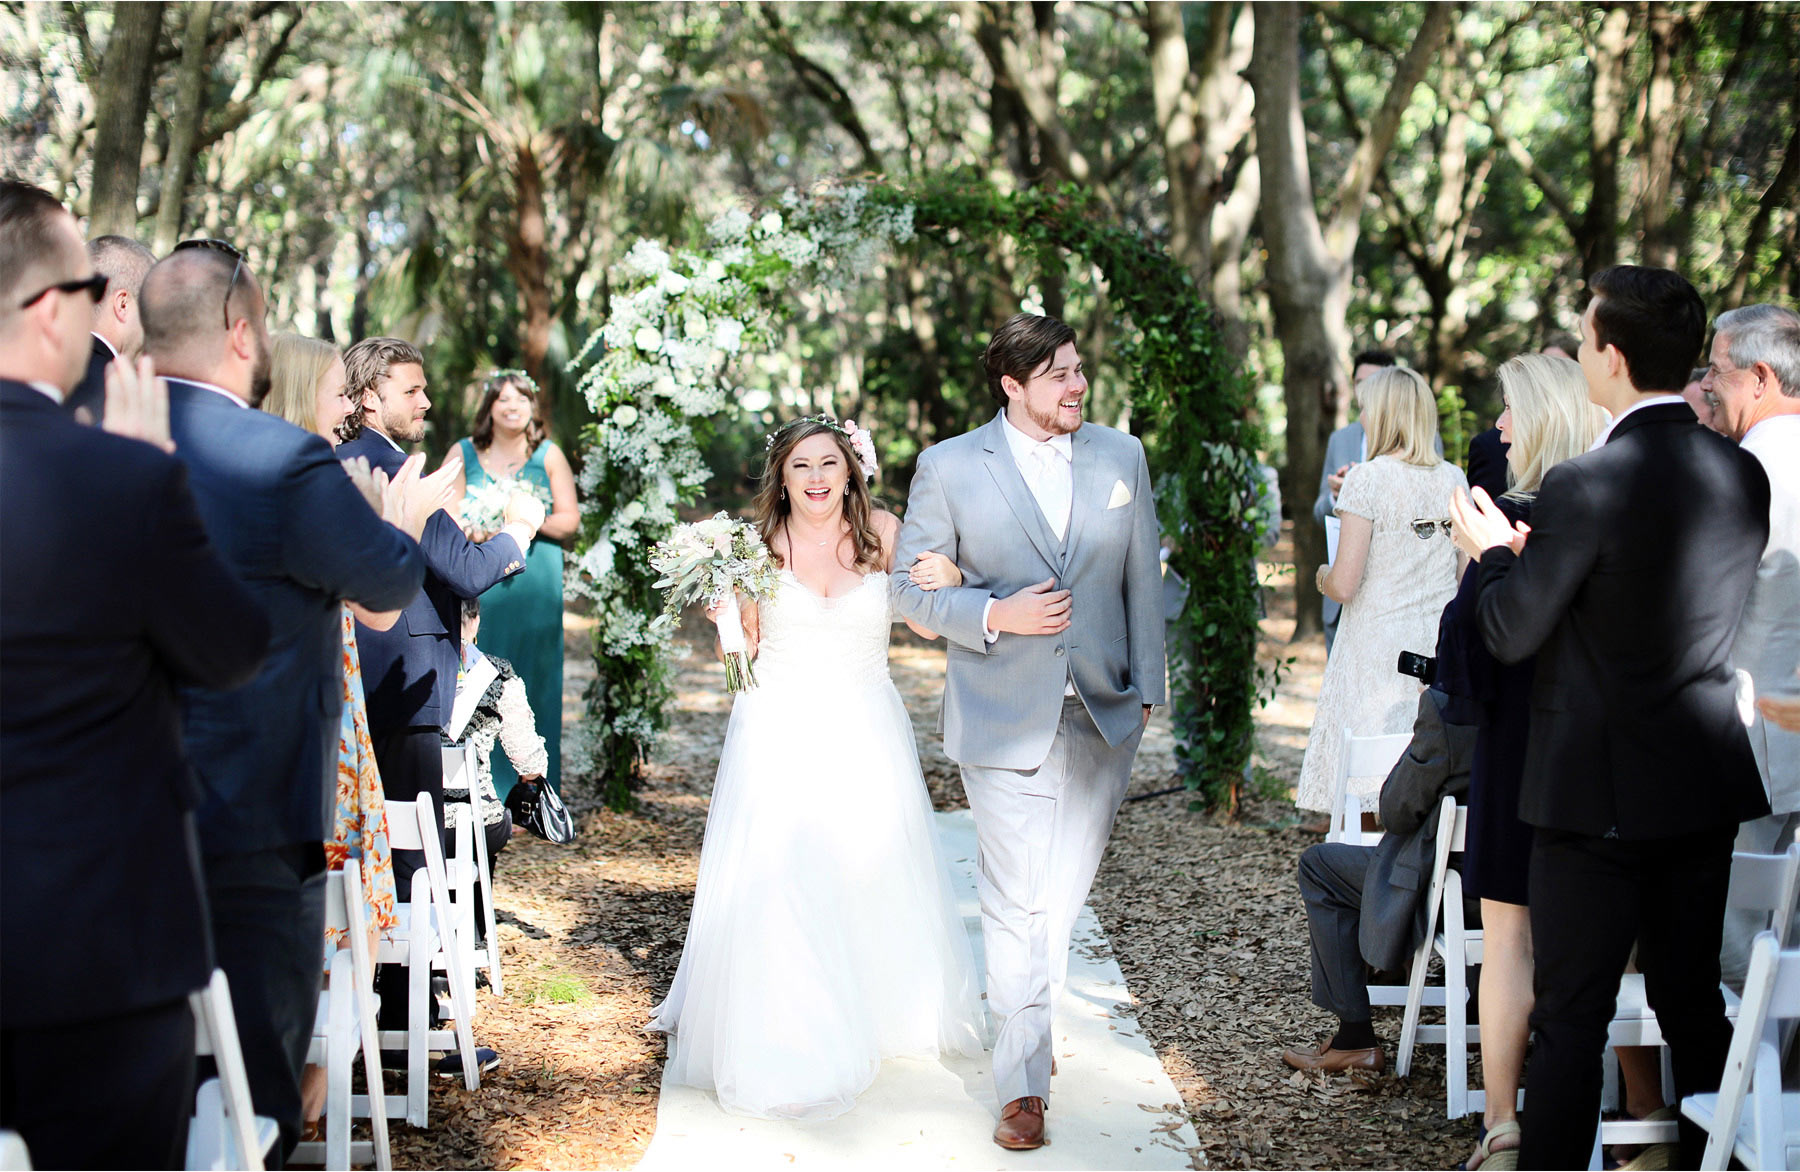 18-Brandon-Florida-Wedding-Photographer-by-Andrew-Vick-Photography-Casa-Lantana-Spring-Ceremony-Bride-Groom-Recessional-Kristianna-and-Ben.jpg